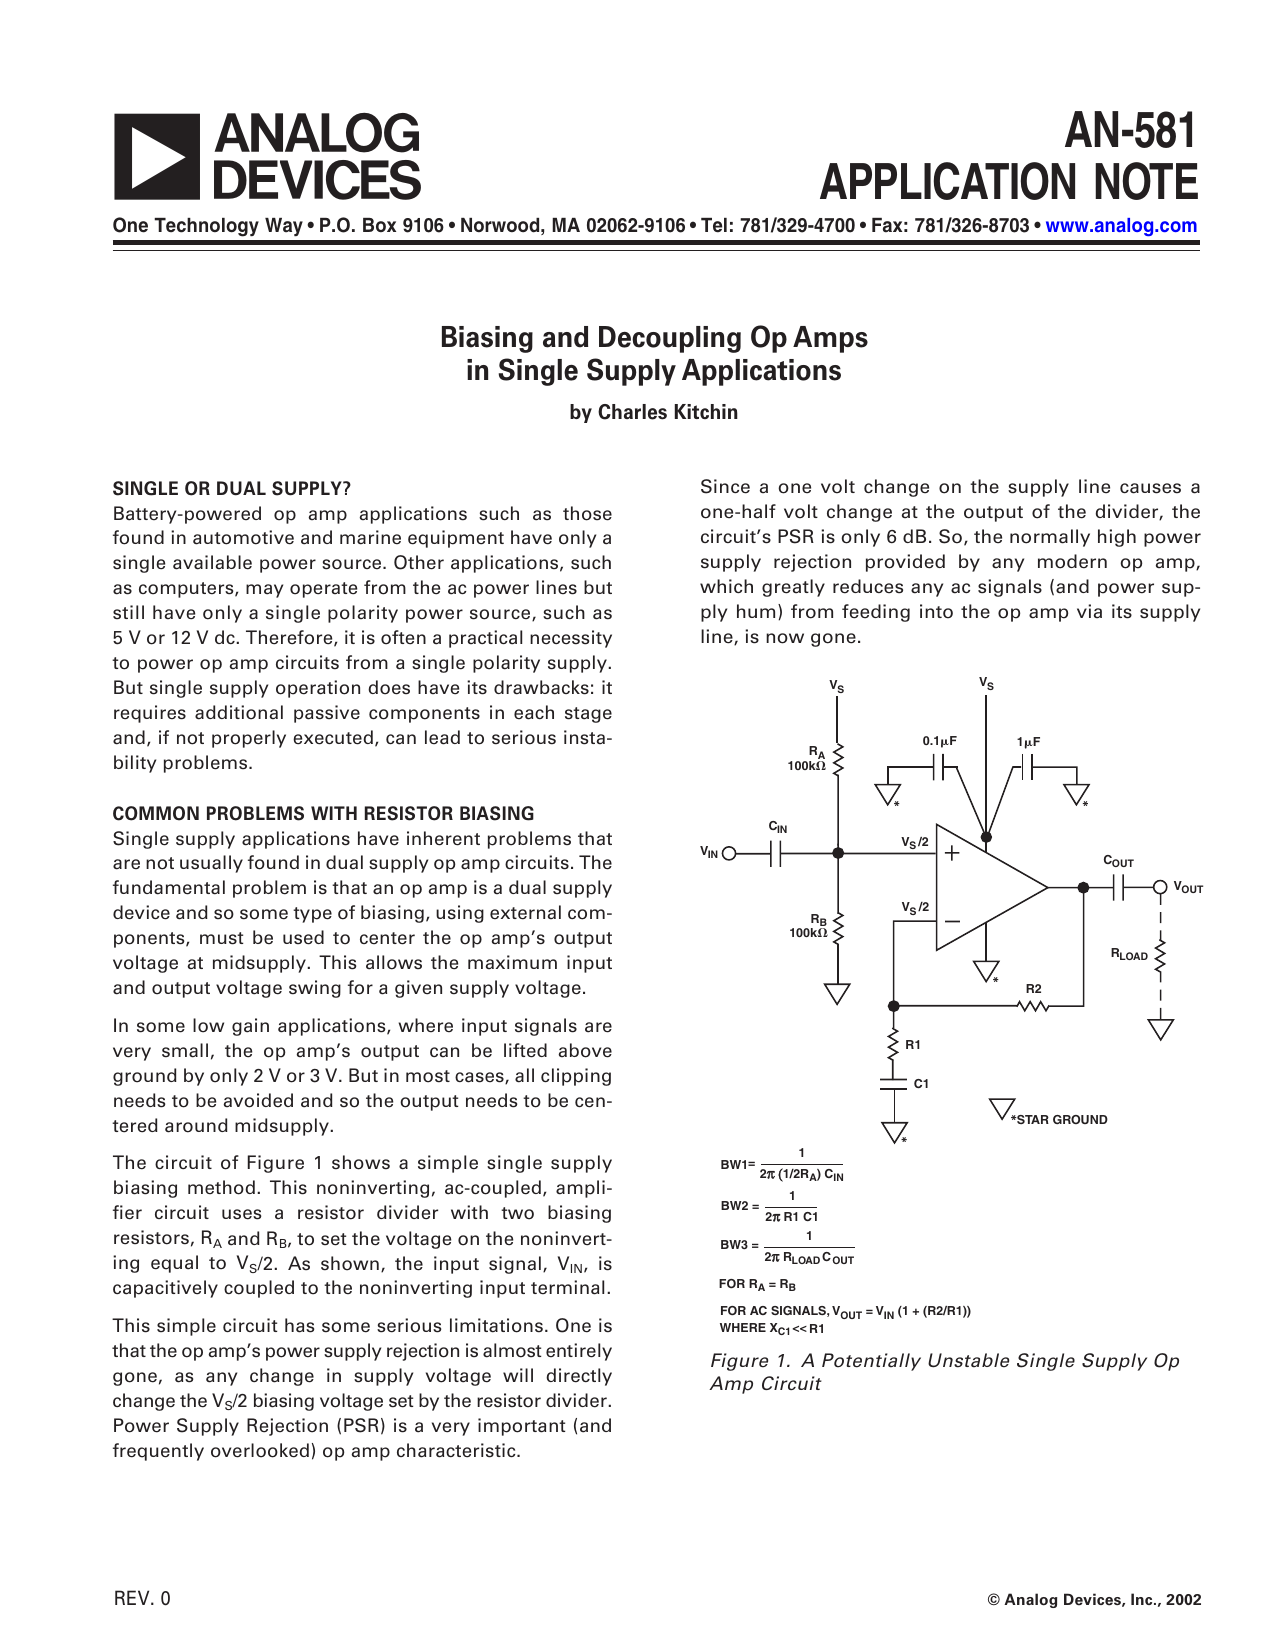 A An 581 Application Note Biasing And Decoupling Op Amps Types Of Amp Circuits